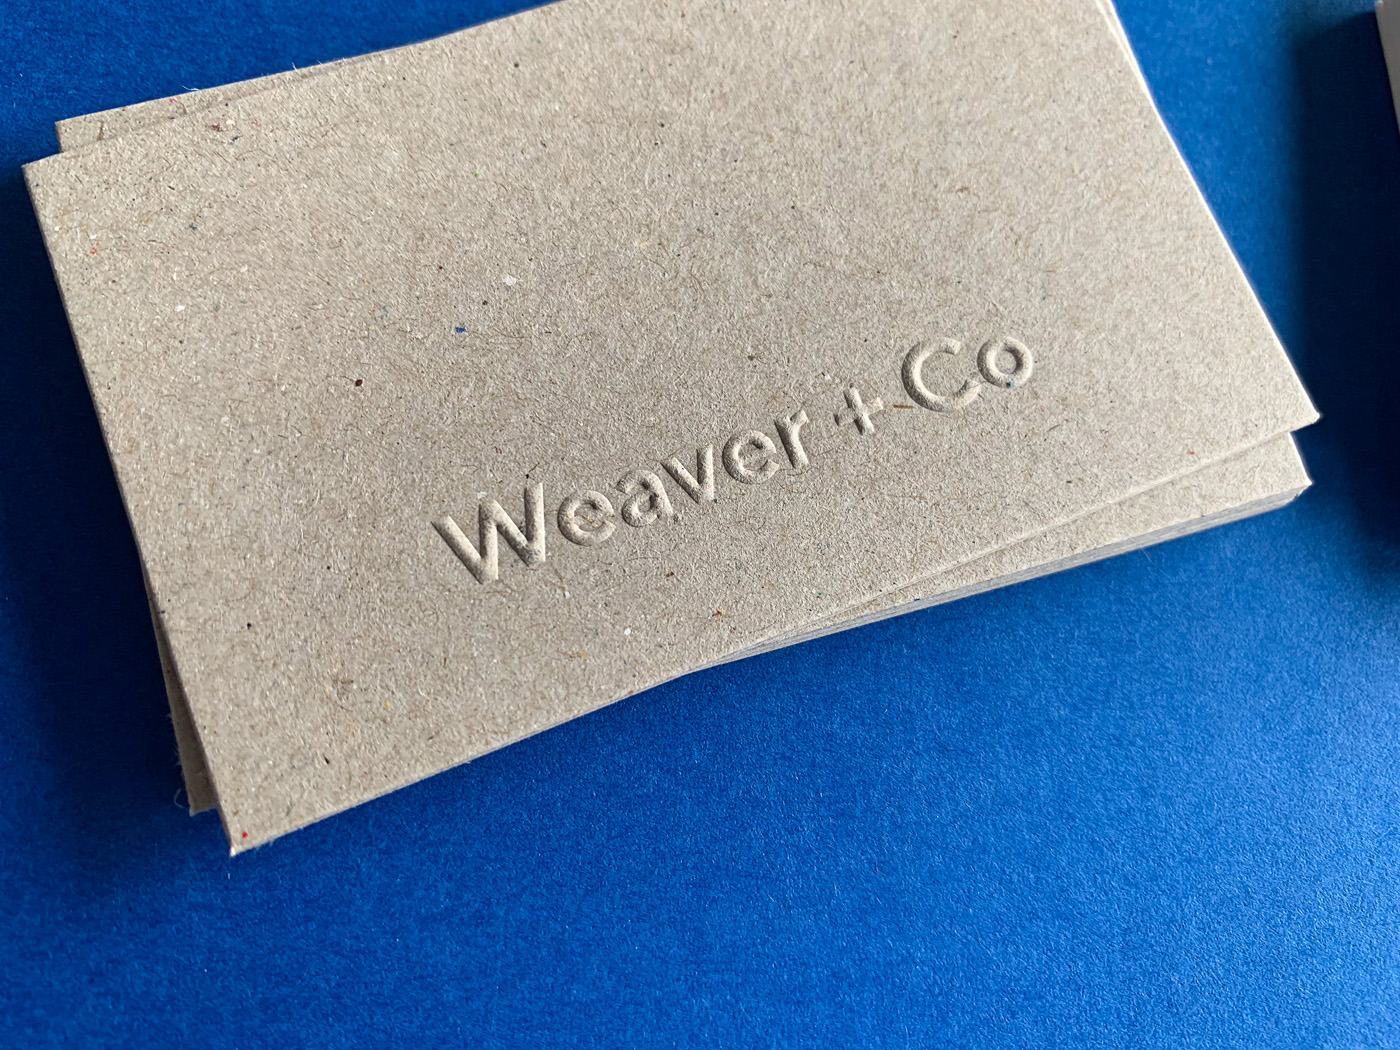 Letter pressed business cards for Martyn Weaver Co on Boxboard